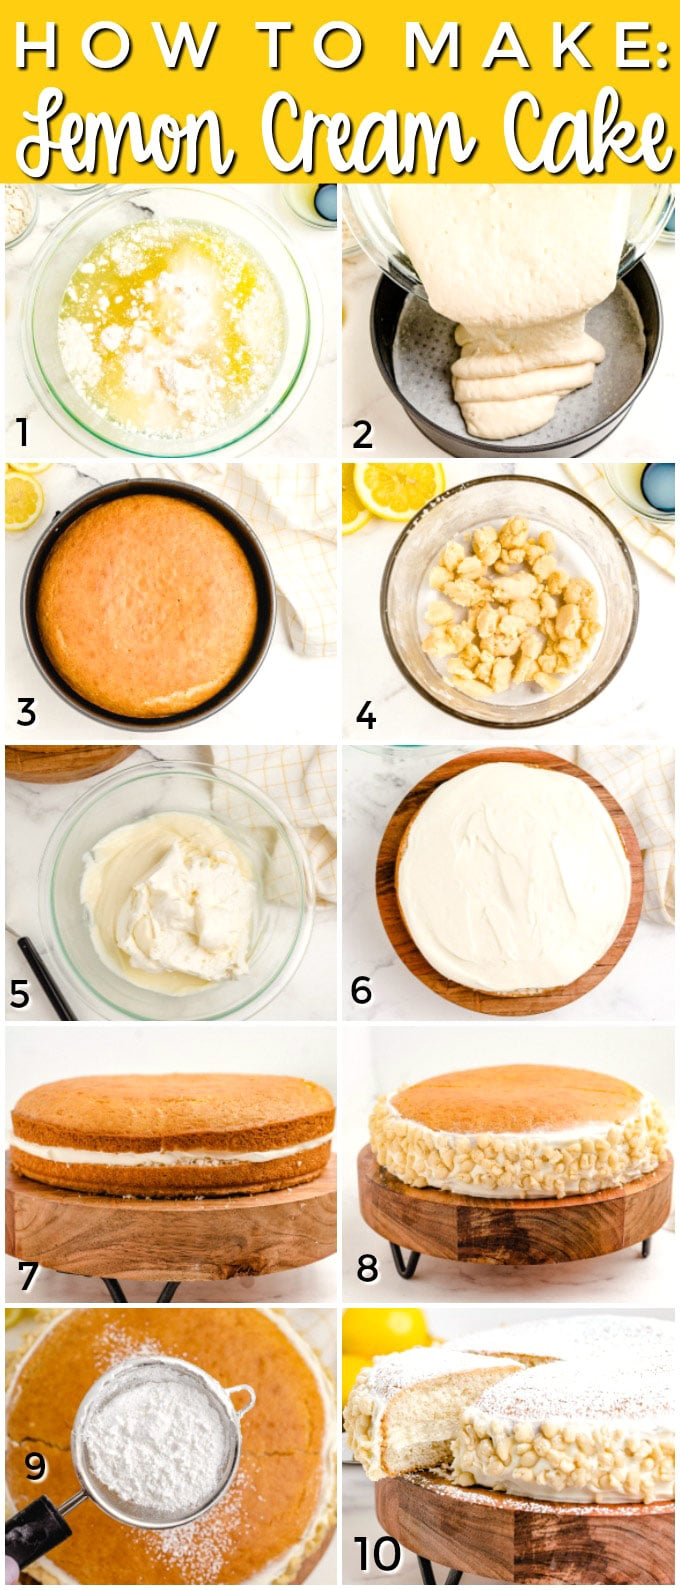 Picture collage showing the steps of how to make this Lemon Cream Cake.